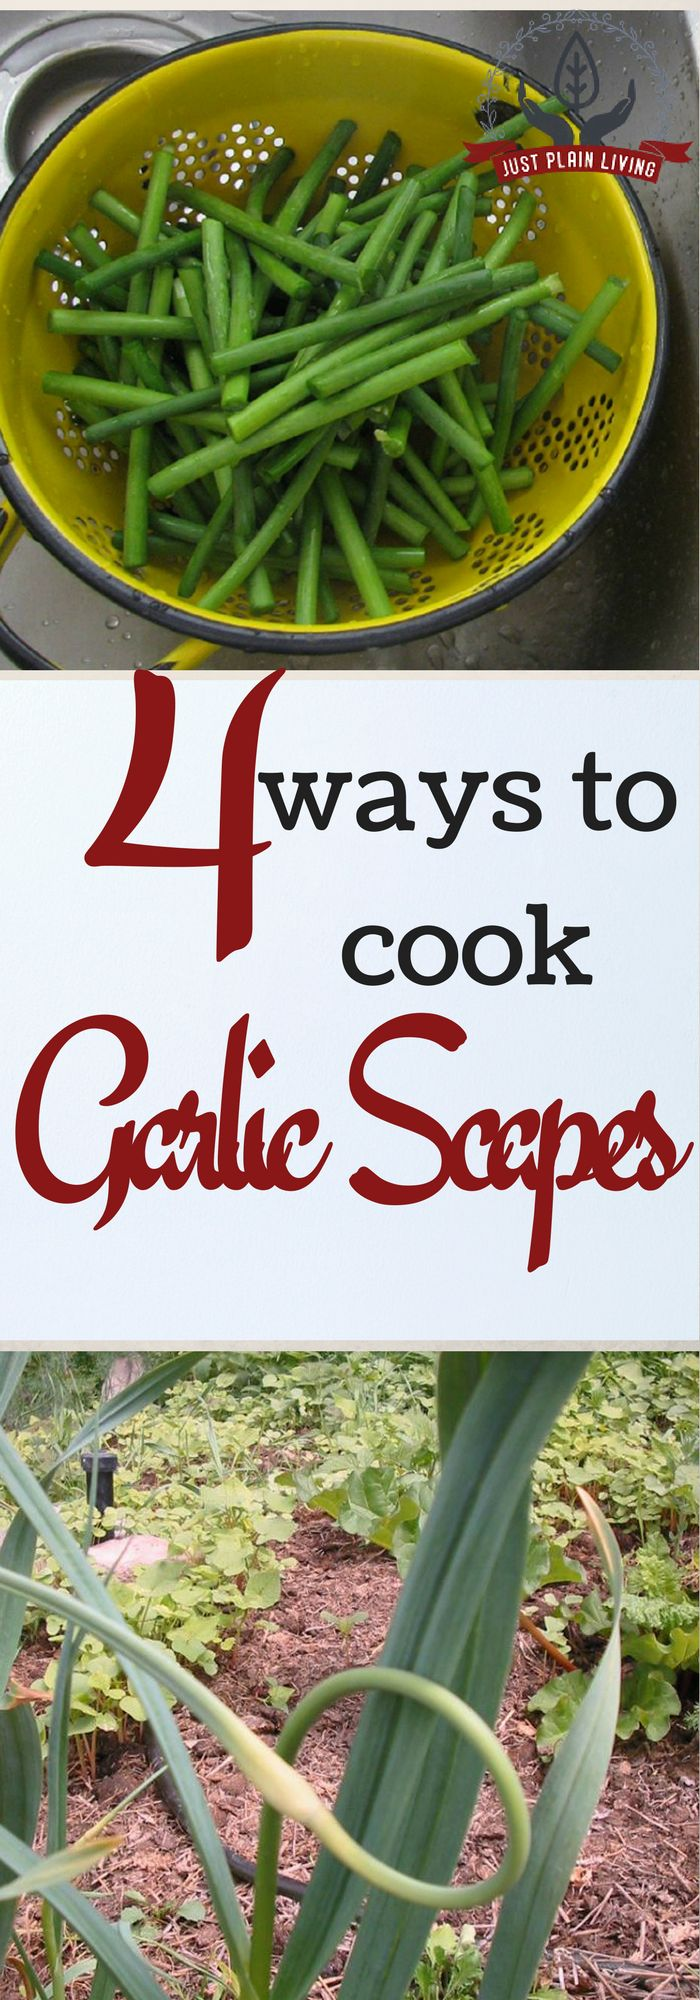 Ever wonder how to cook garlic scapes when you see them at the grocery? This easy-to-cook vegetable is one of my favourites and I think you'll like them, too.